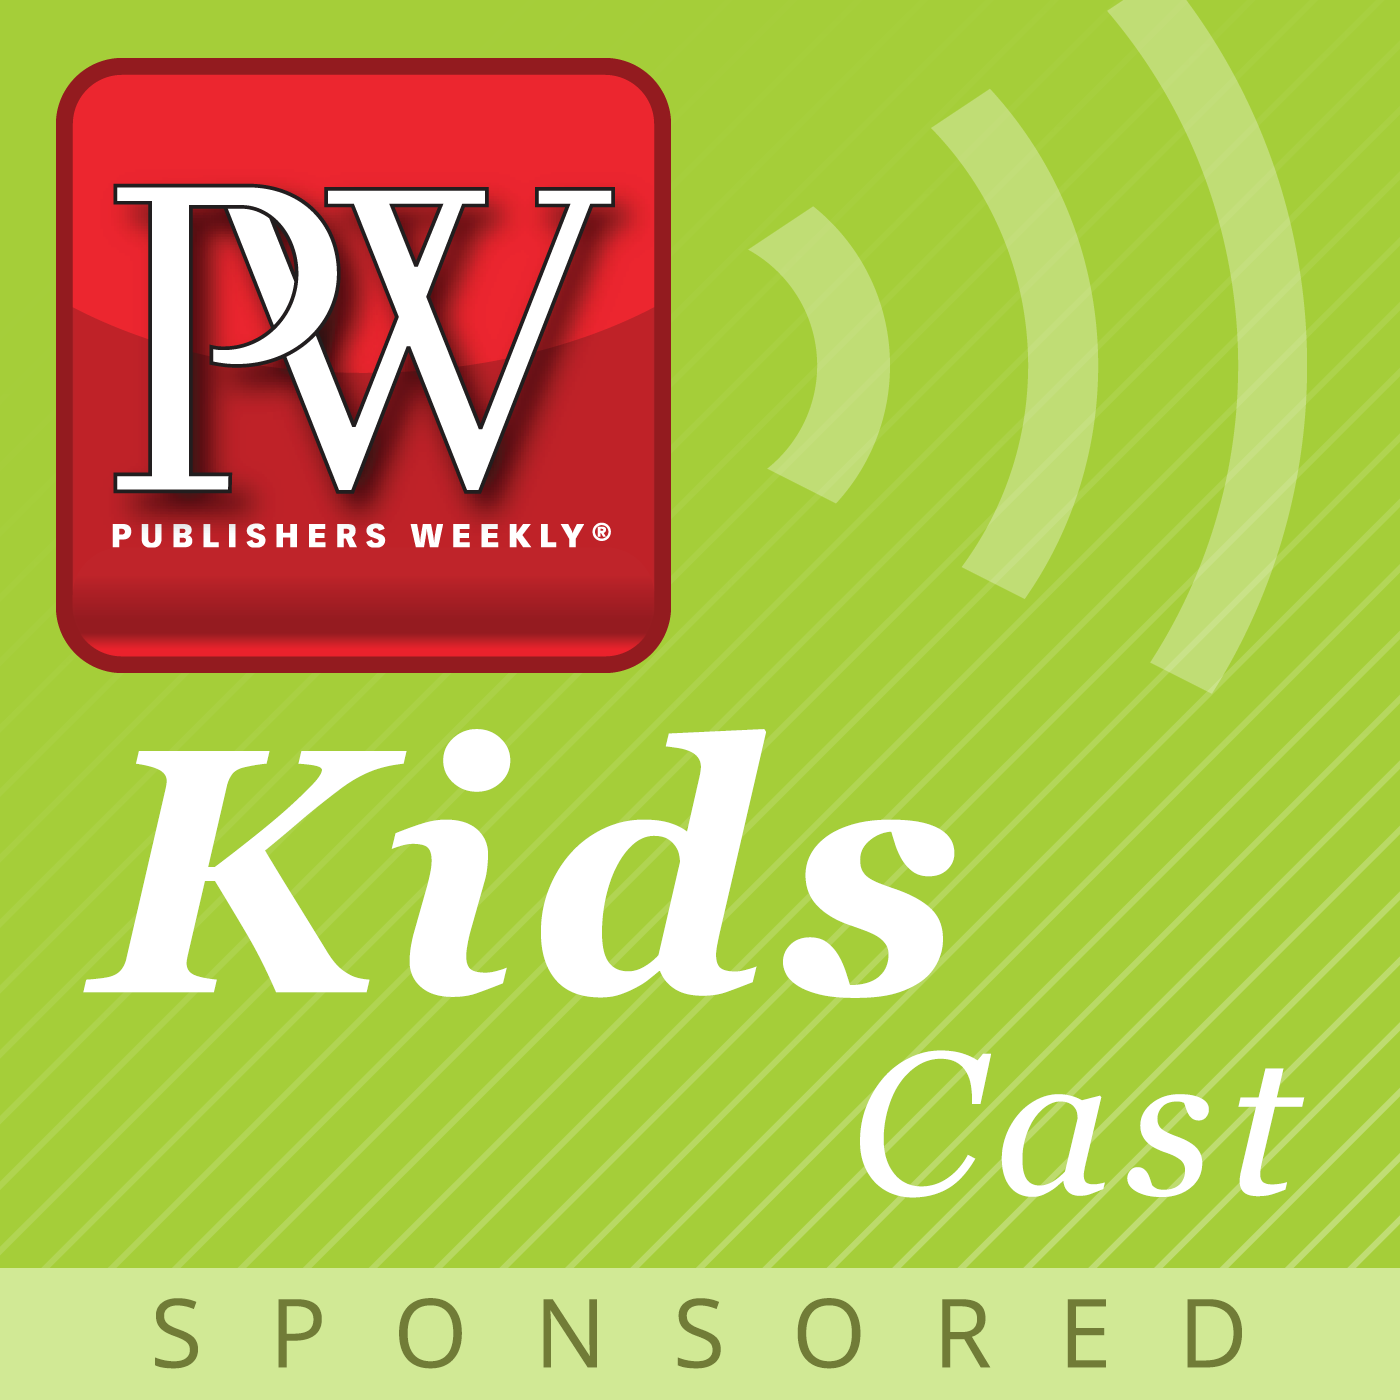 PW KidsCast: A Conversation with Doug Cenko